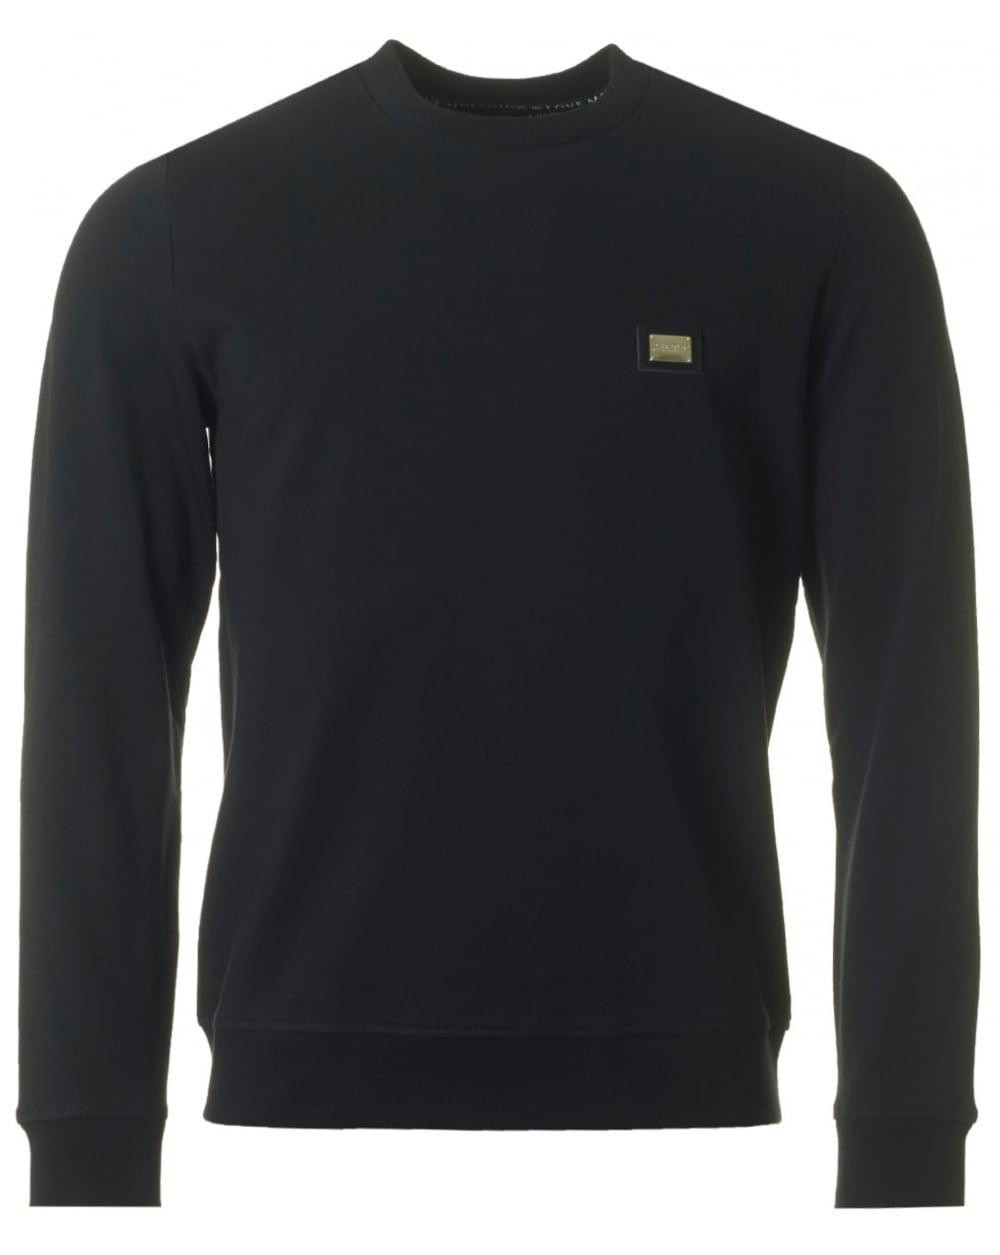 crew neck sweatshirt - Black Les Hommes Find Great Online Free Shipping Really Marketable Cheap Online R5wFzzMn